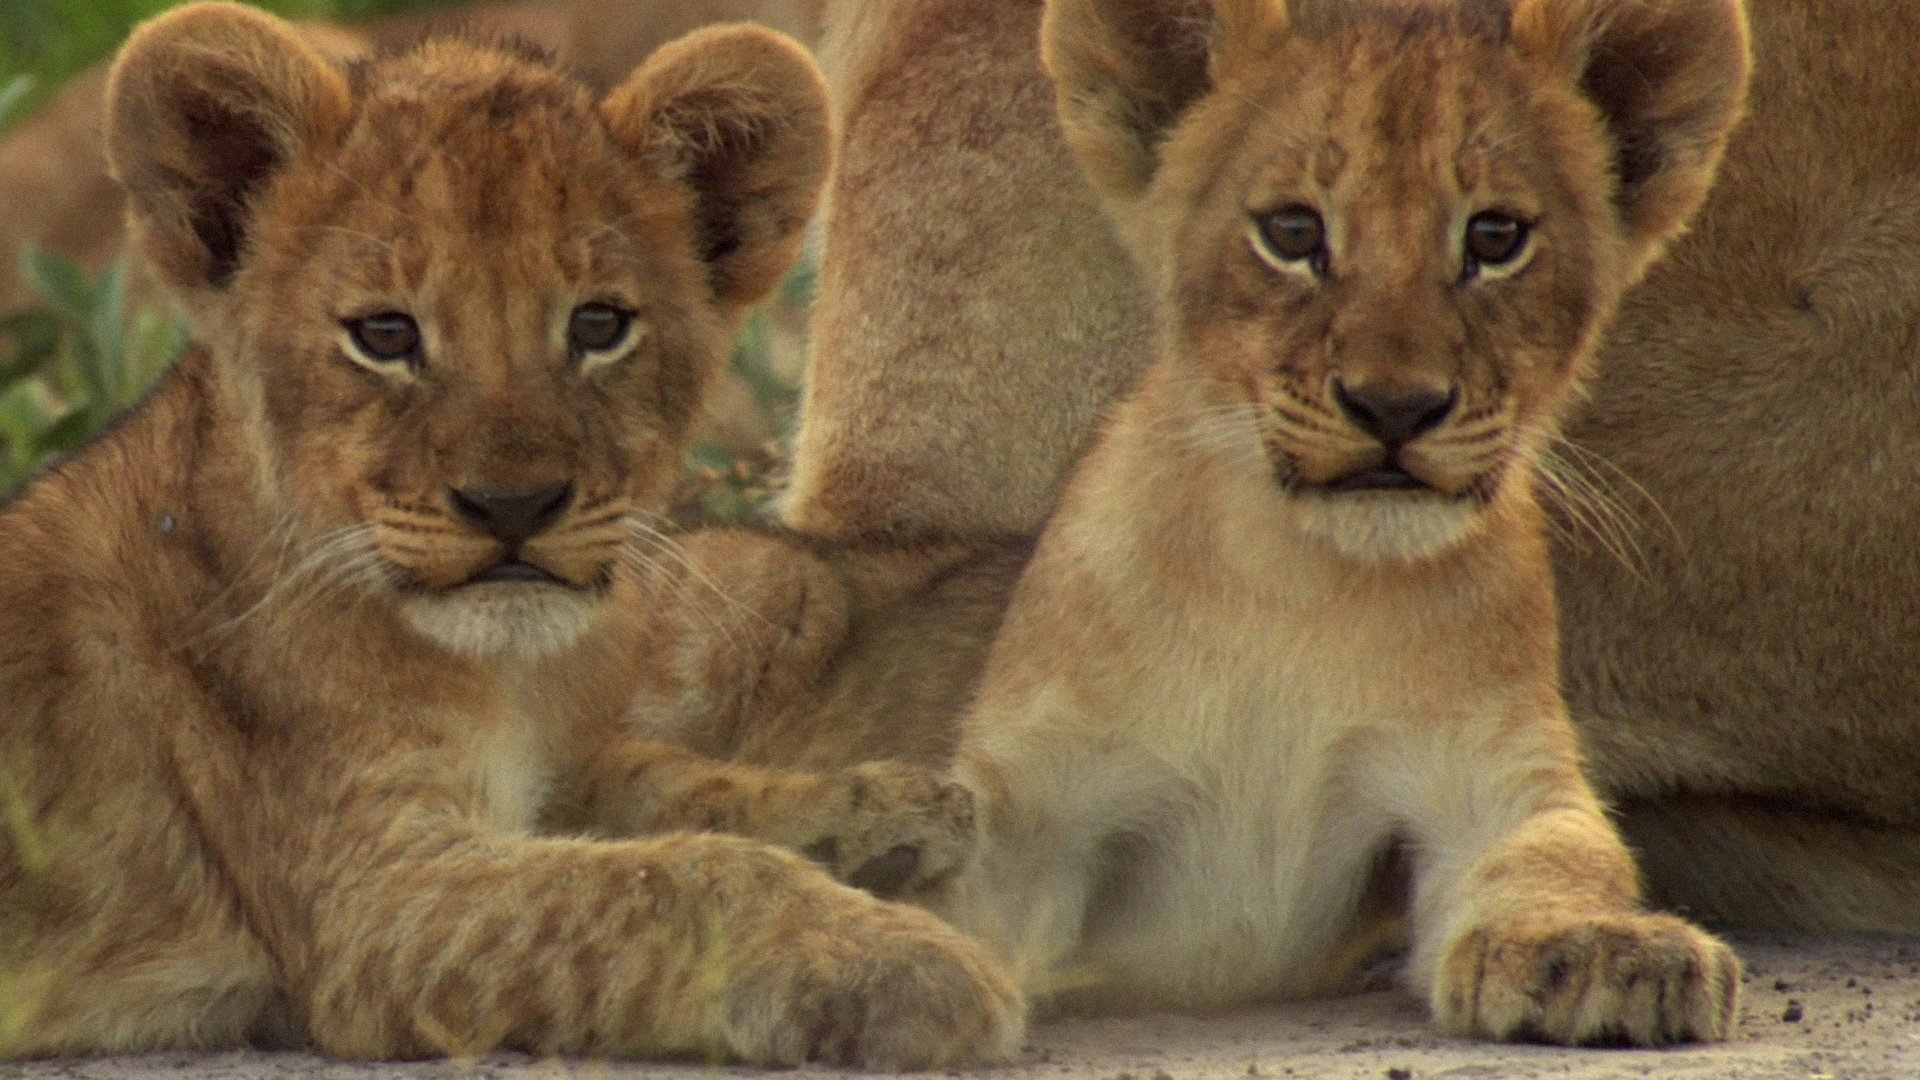 Two Cute Lion Cubs Hd Wallpaper Background Image 1920x1080 Id